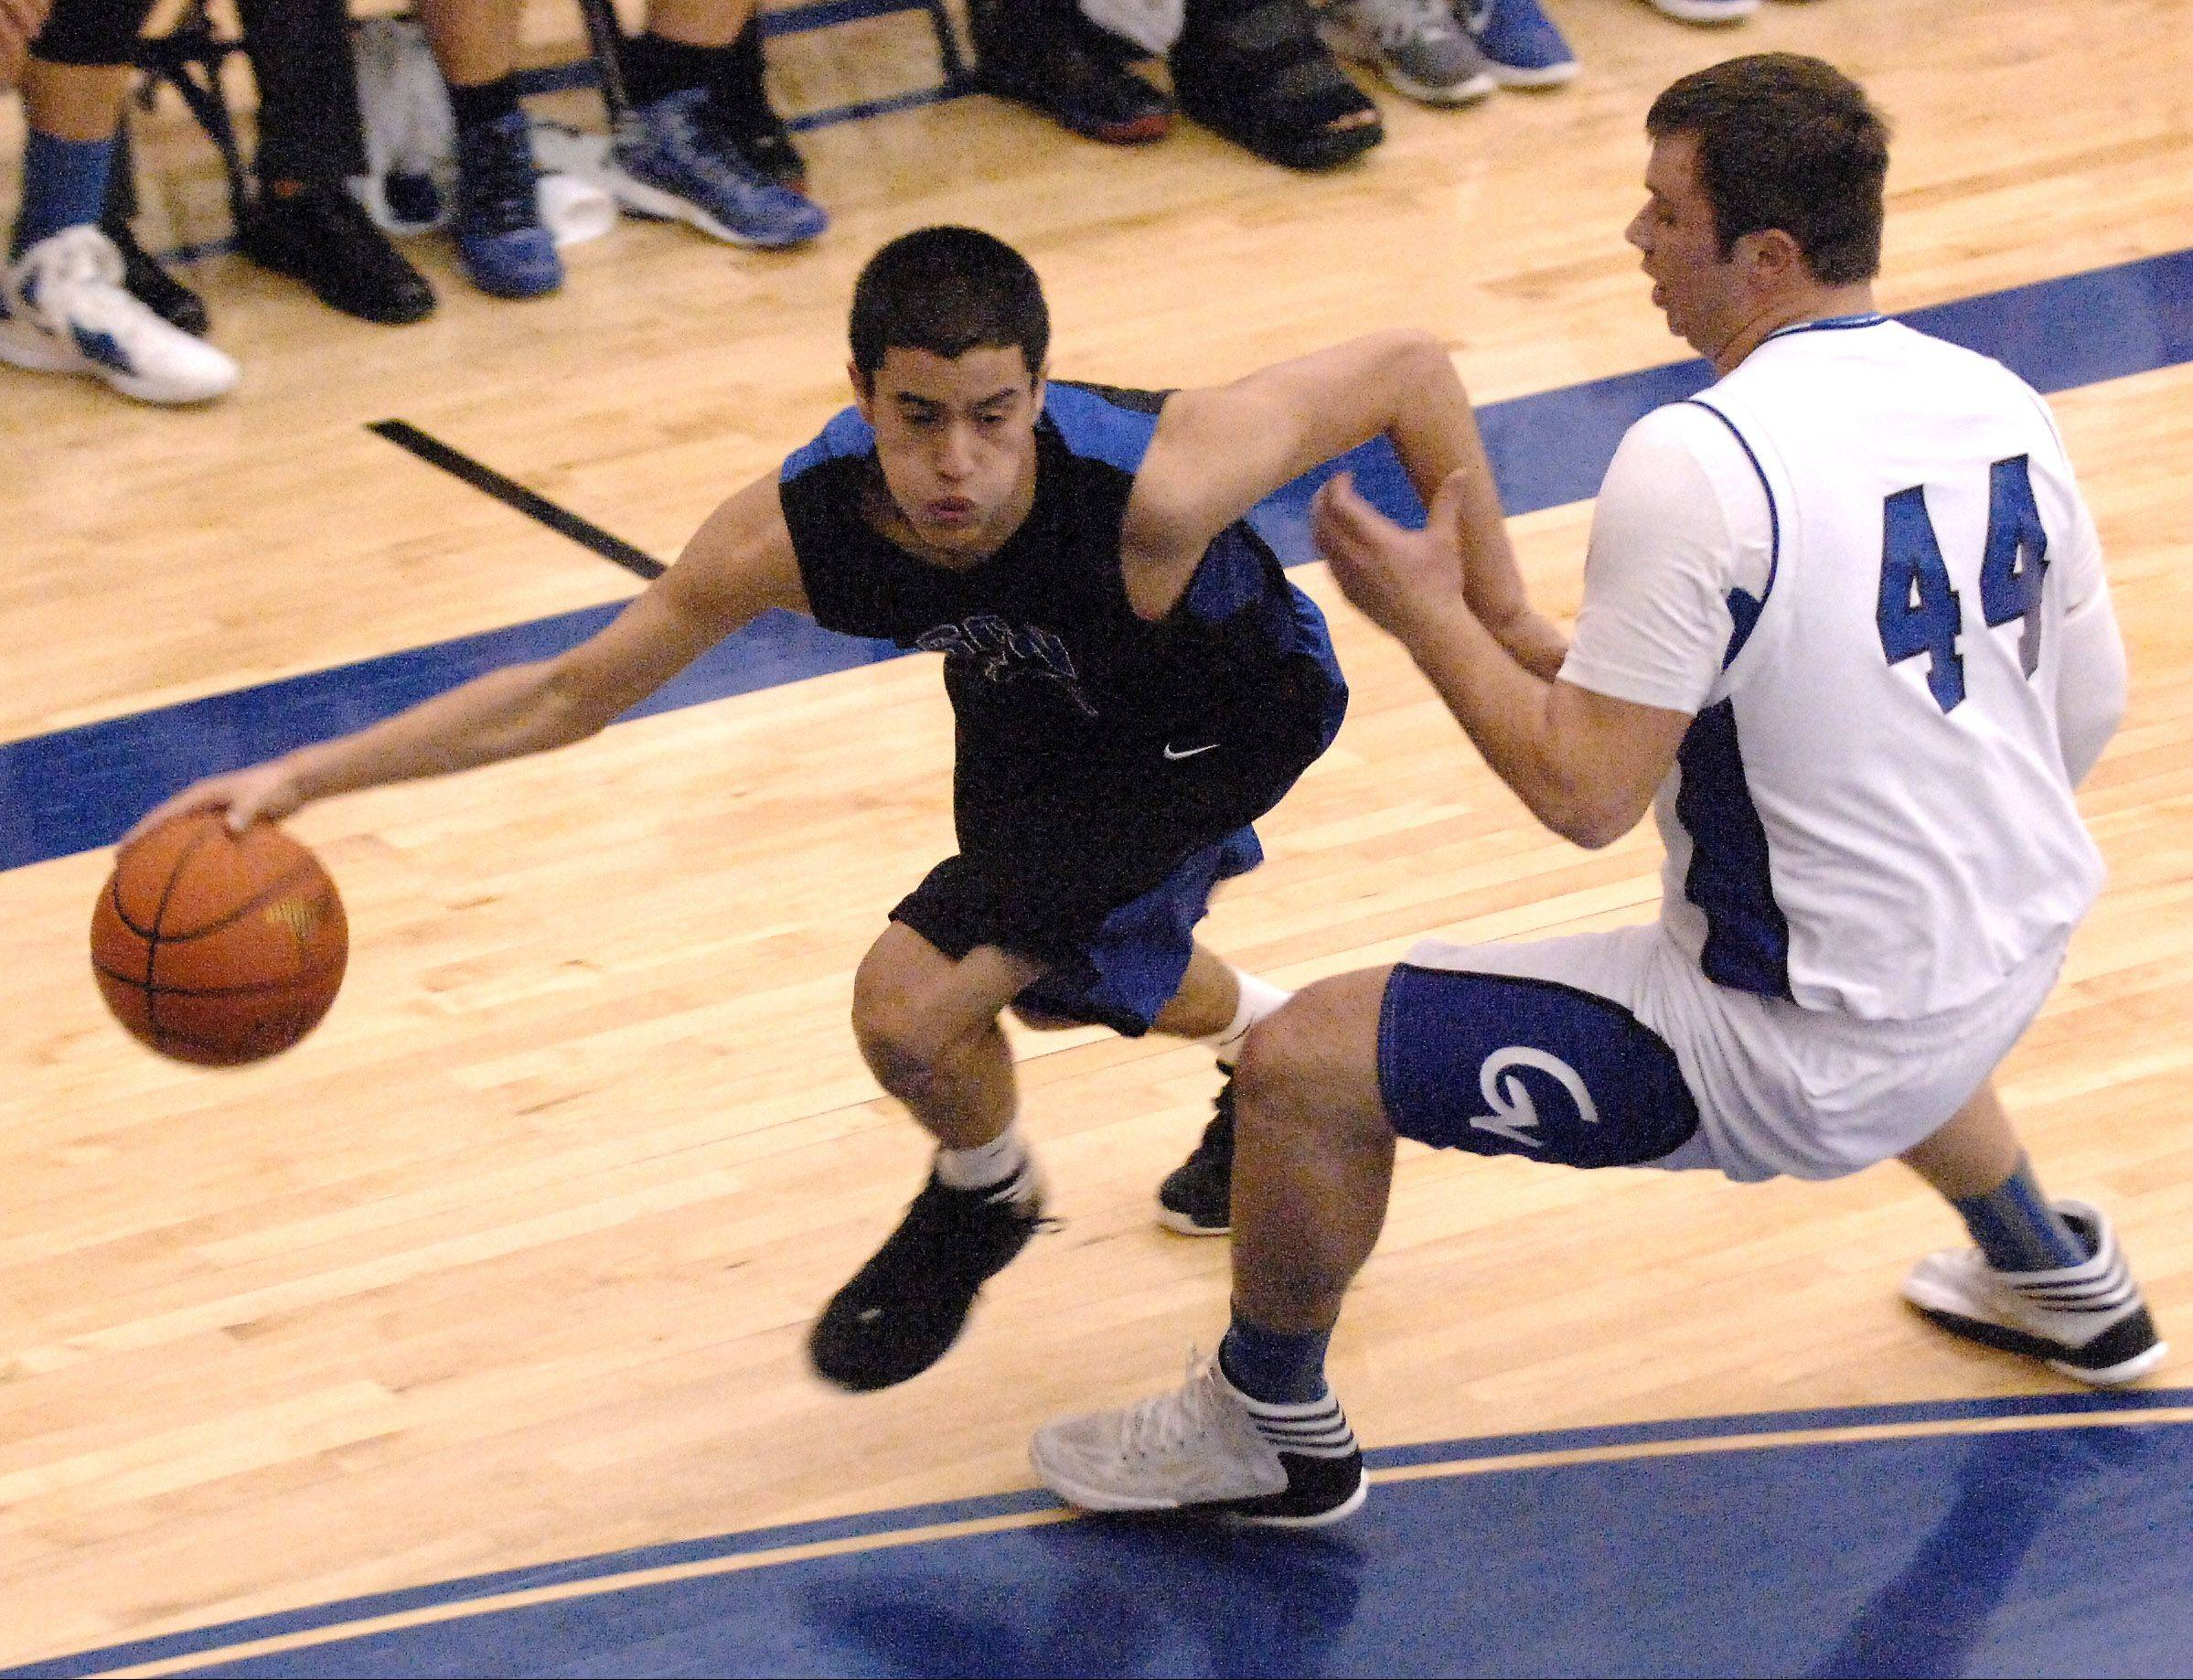 St. Charles North's Tony Neari drives past Geneva's Connor Chapman Friday in Geneva.